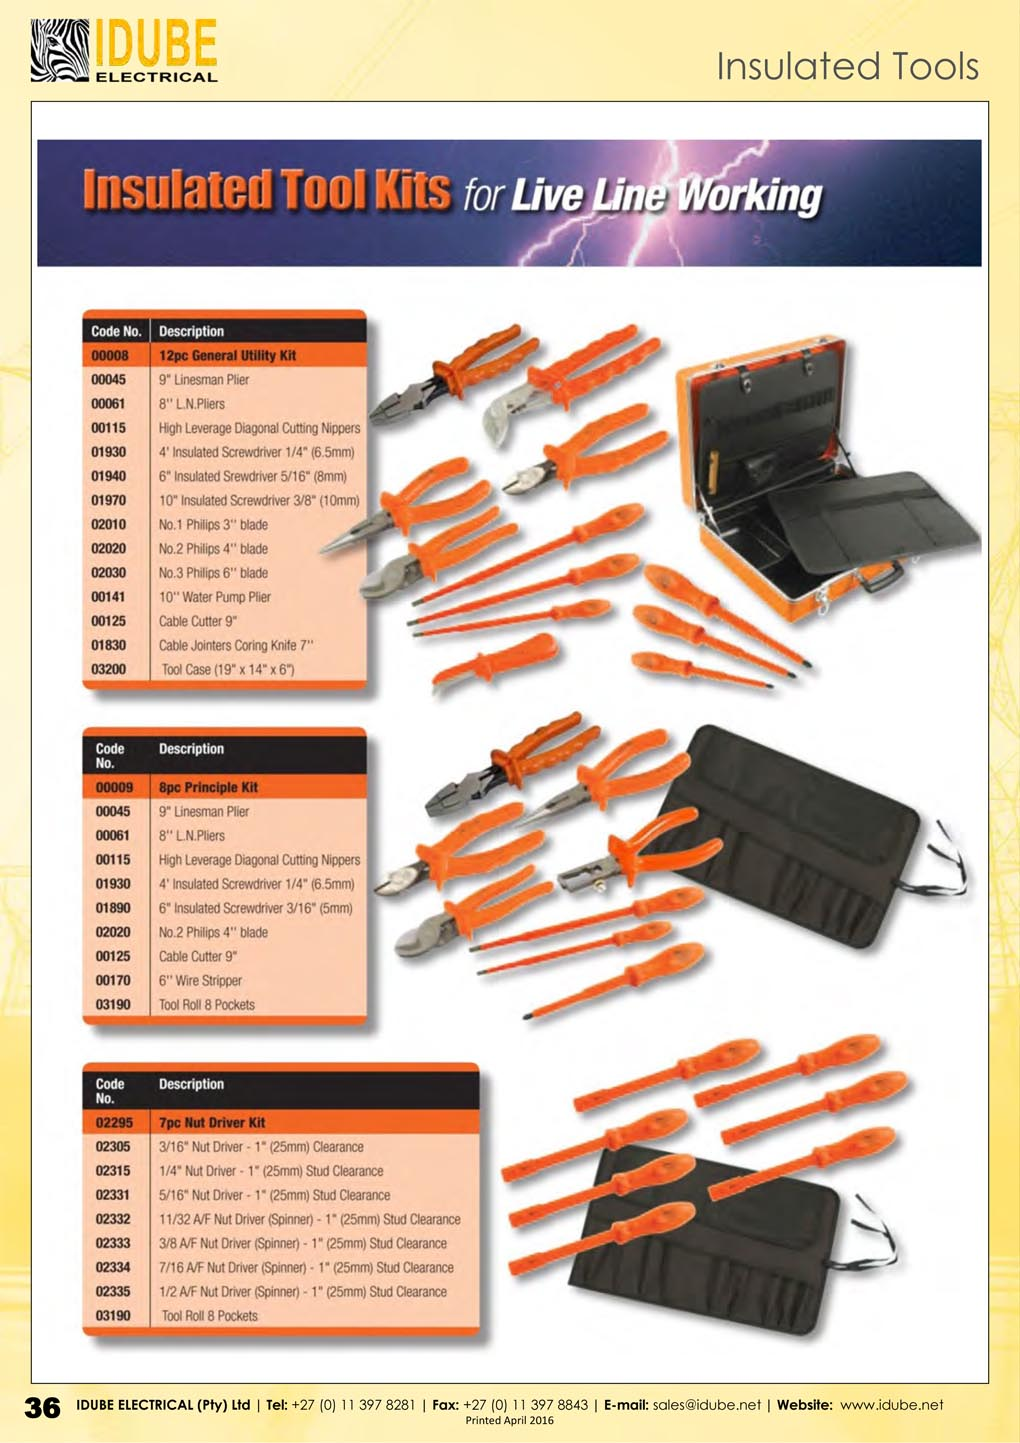 ITL Insulated Tools -2 - 1020 x 1443